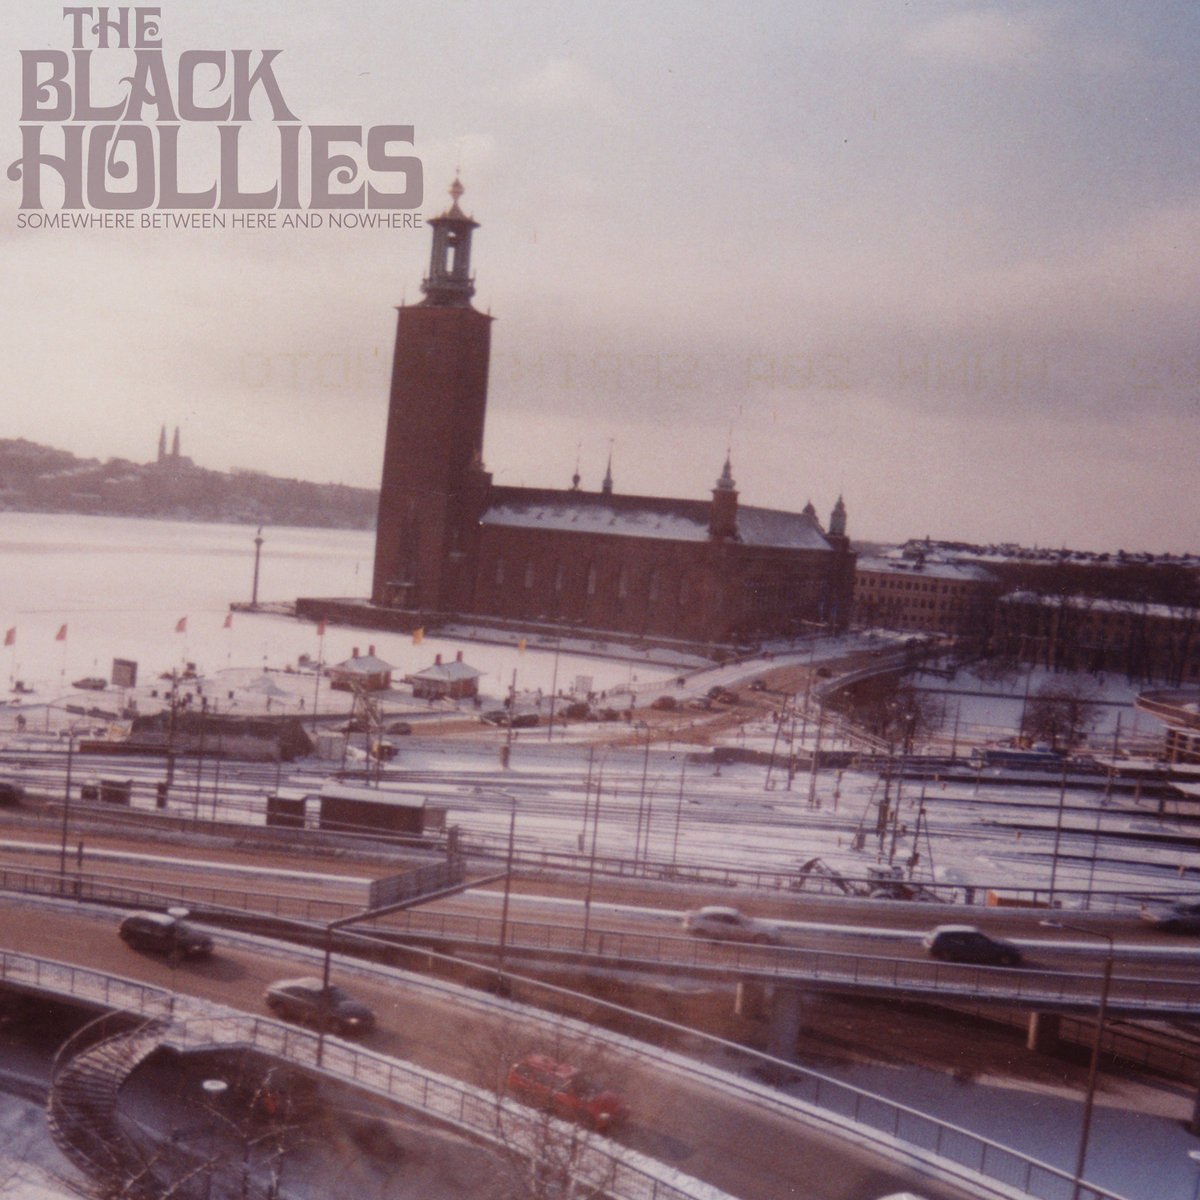 The Black Hollies - Somewhere Between Here and Nowehere